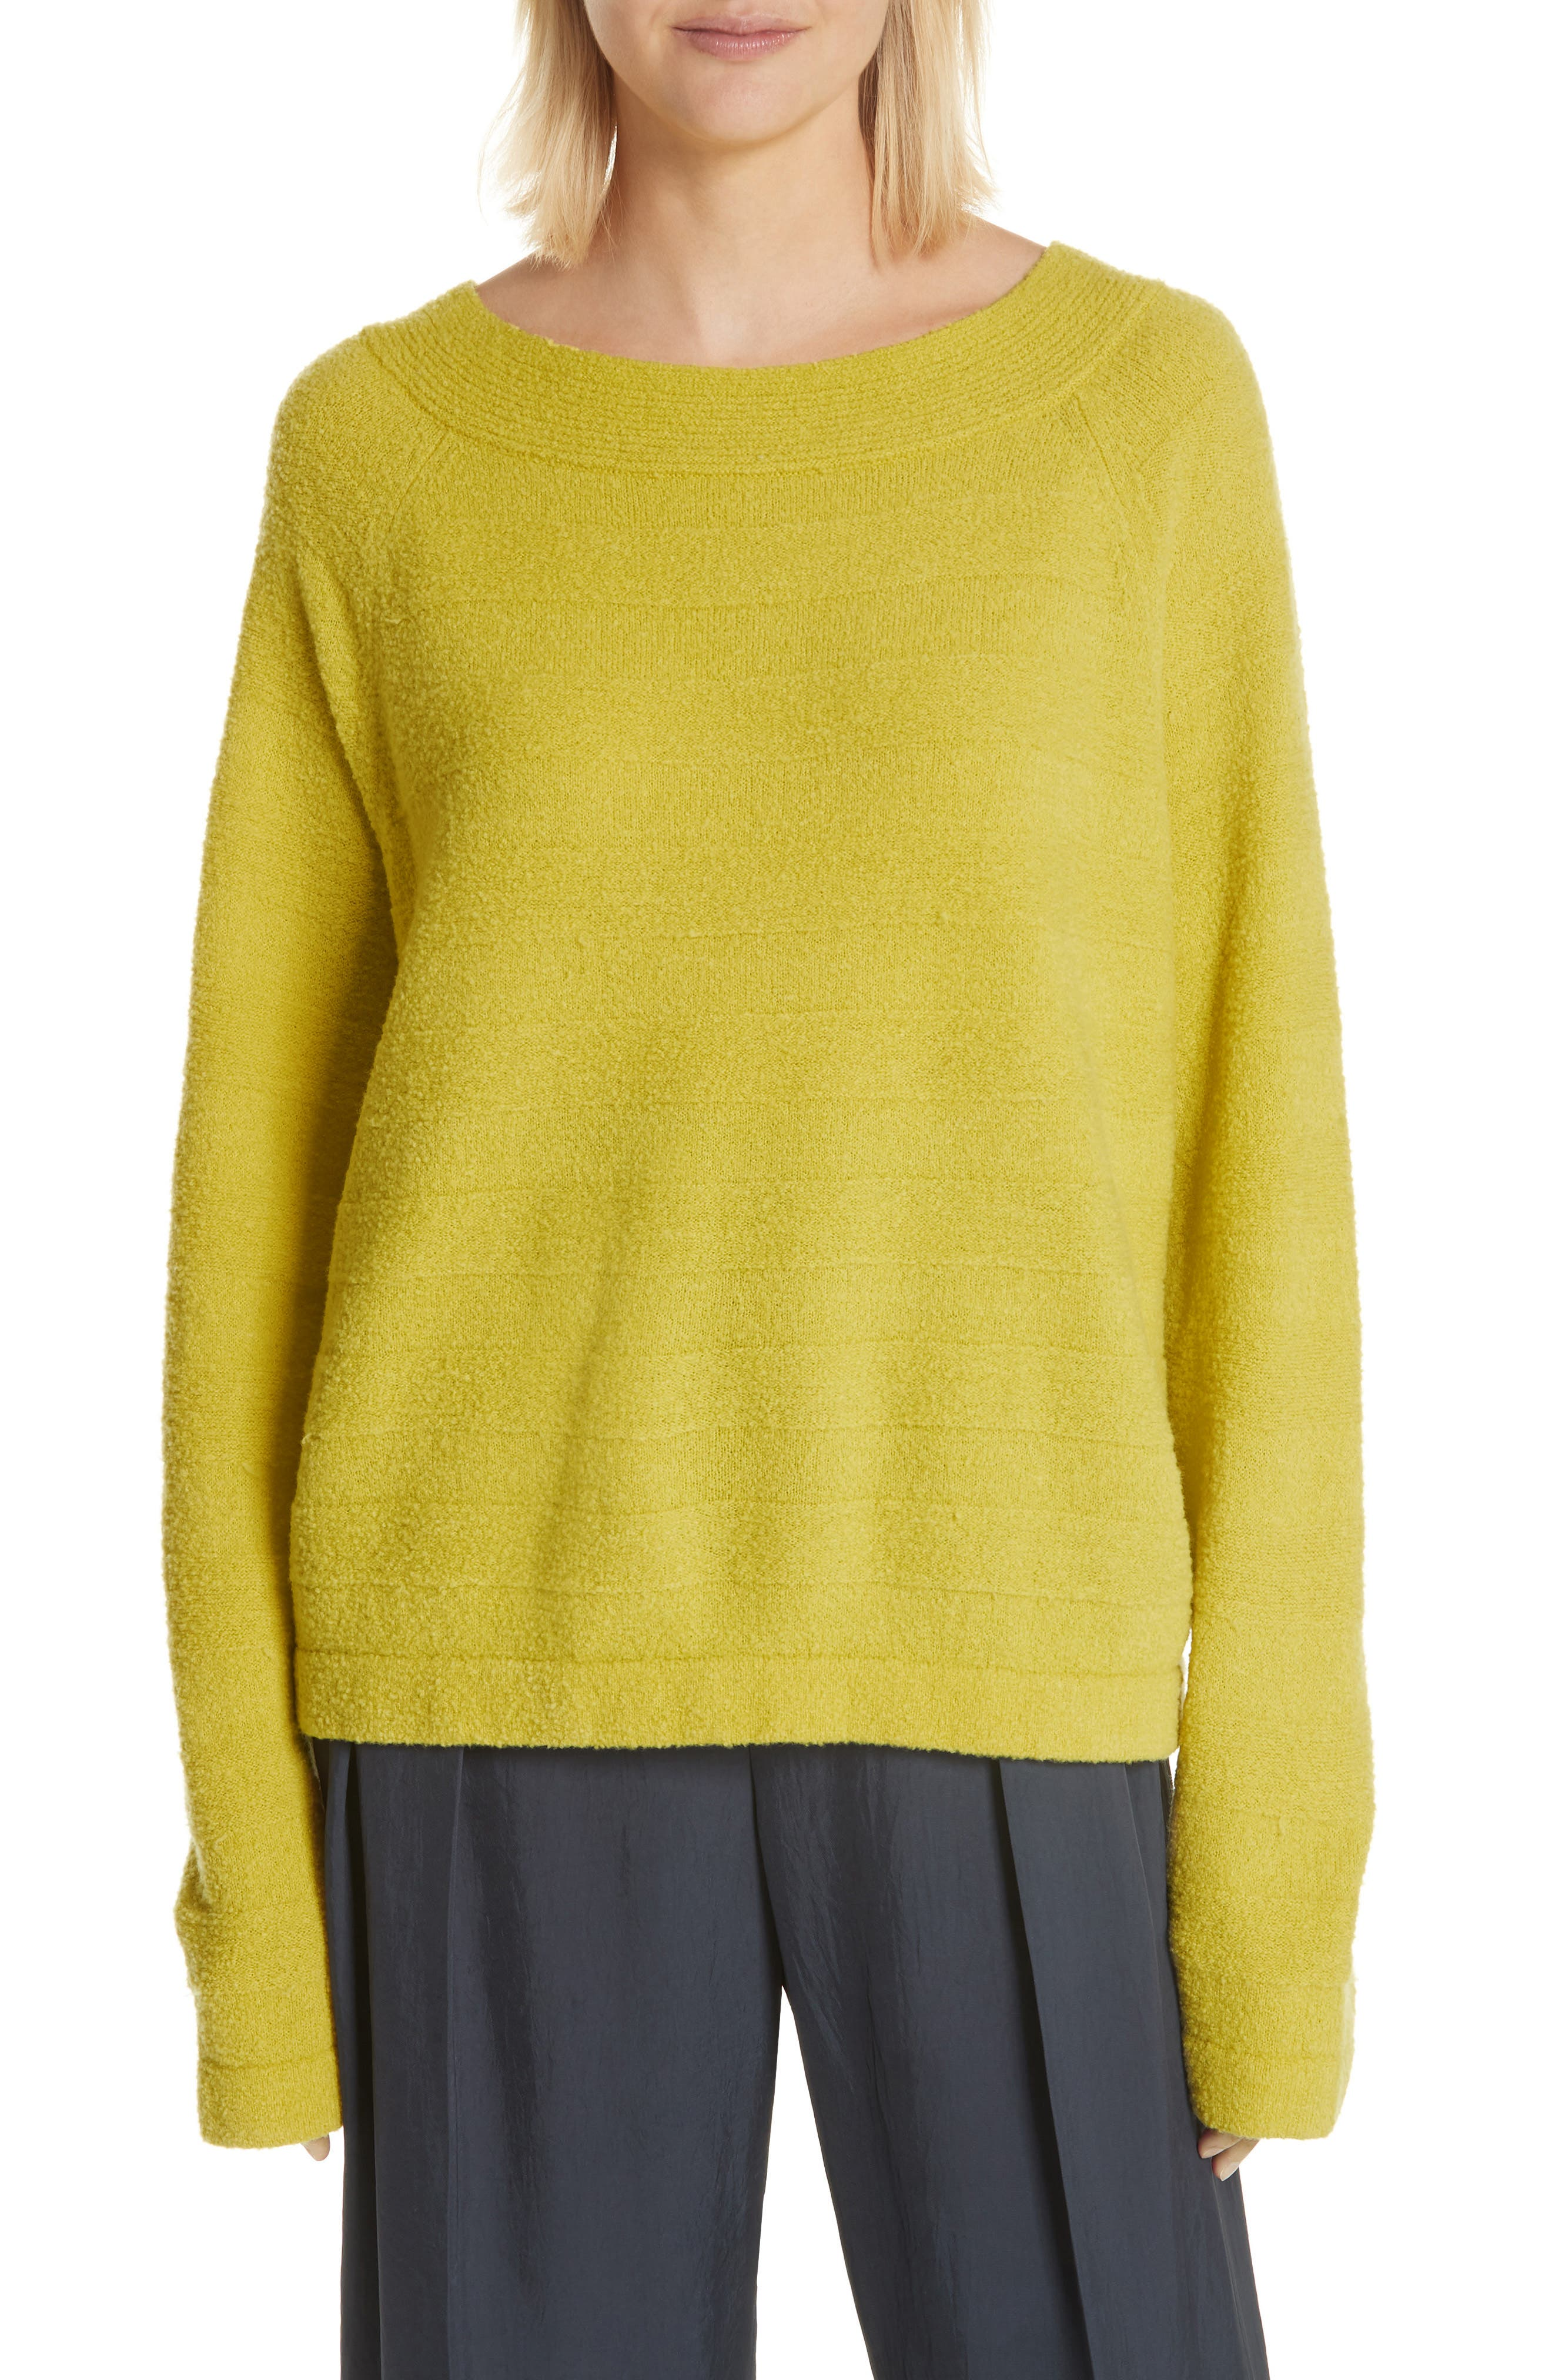 Merino Wool Blend Knit Sweater,                             Main thumbnail 1, color,                             750